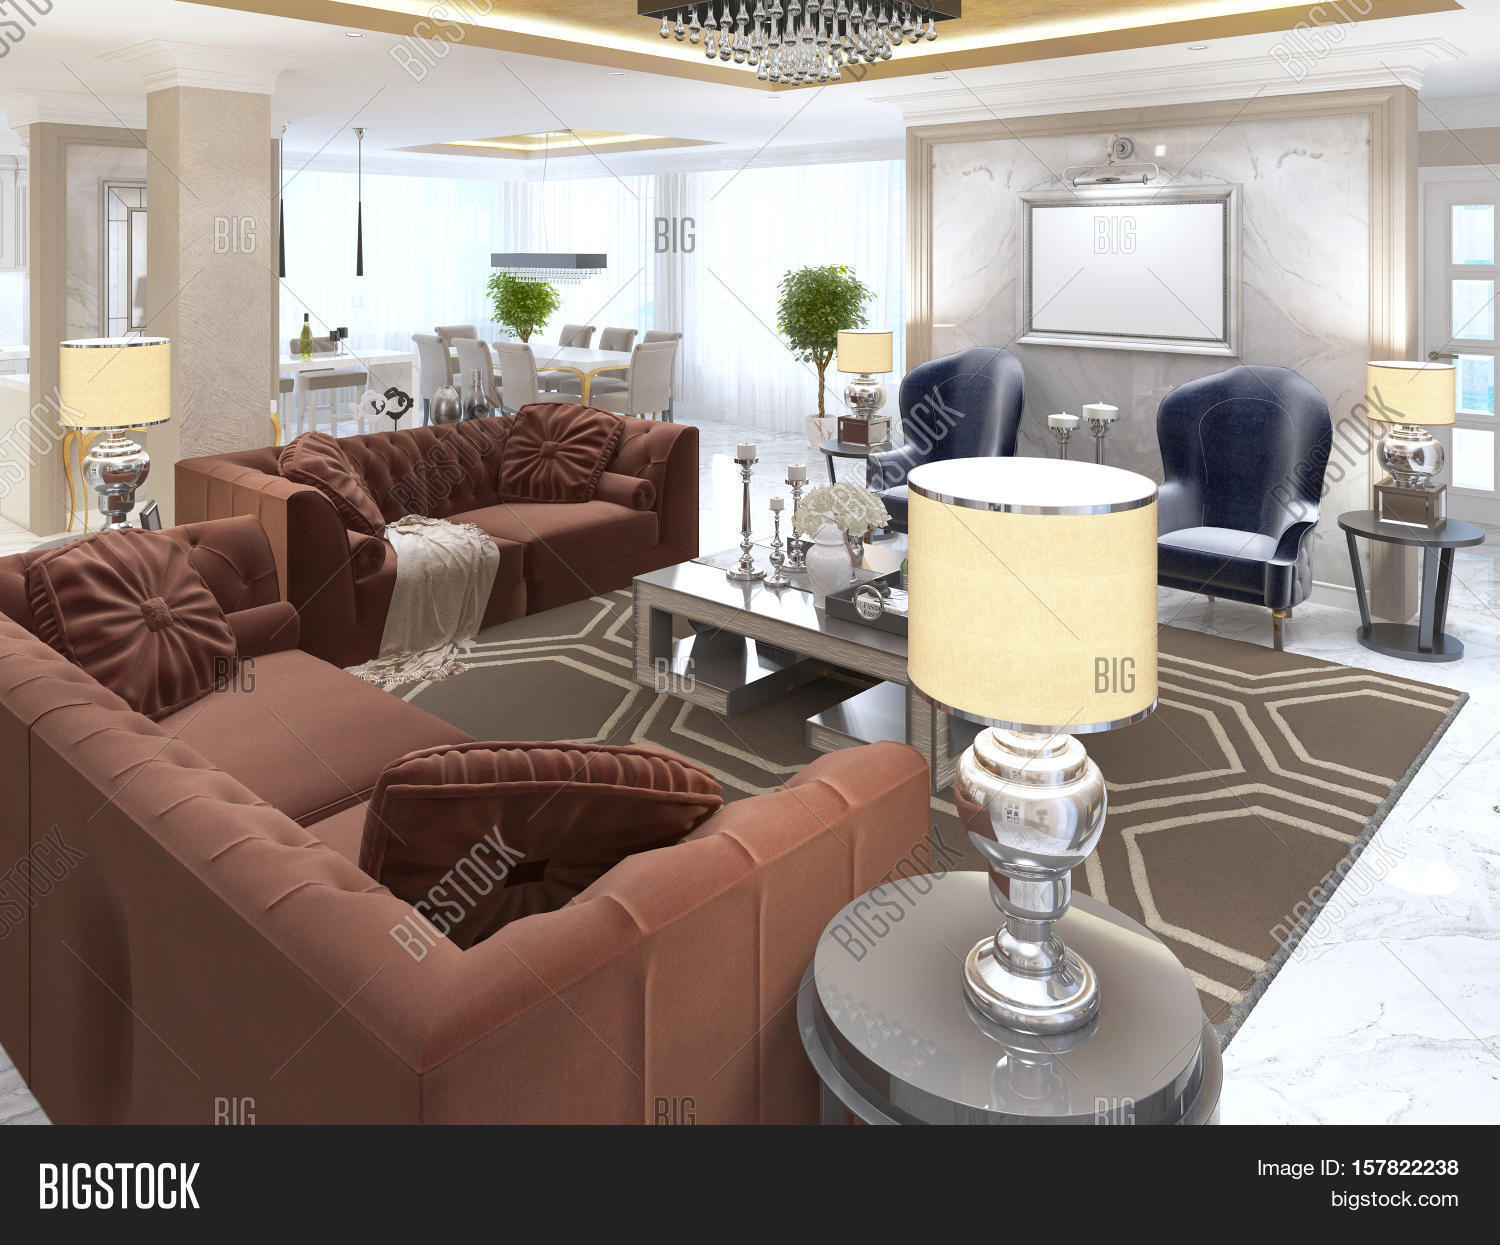 Living room art deco style image photo bigstock for Art deco style living room furniture